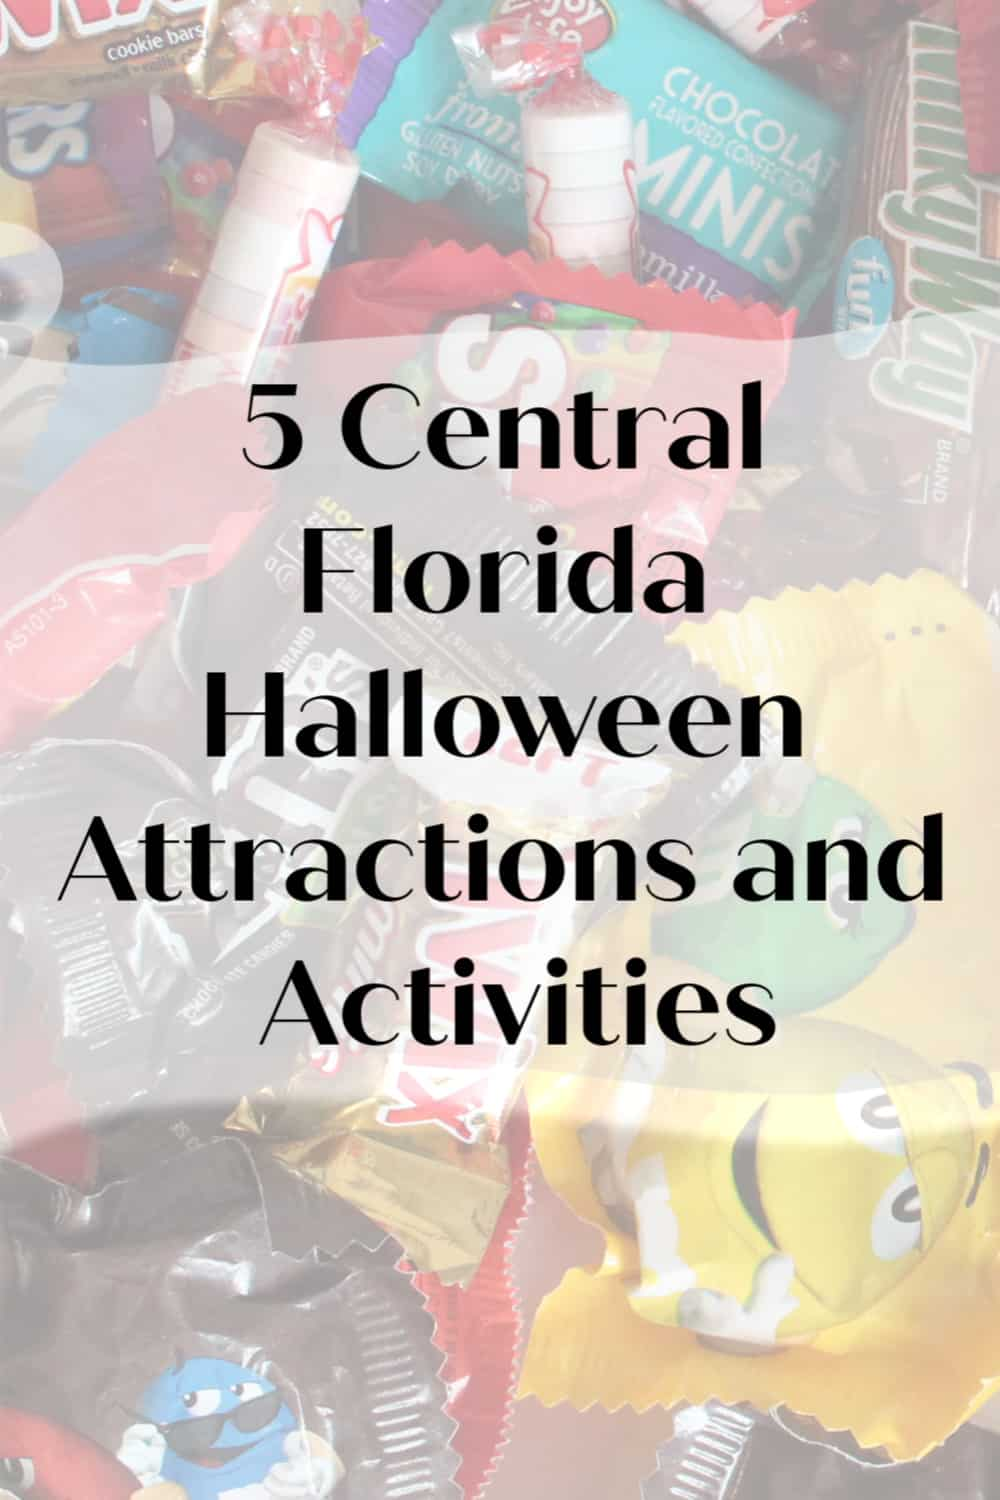 5 Central Florida Halloween Attractions and Activities